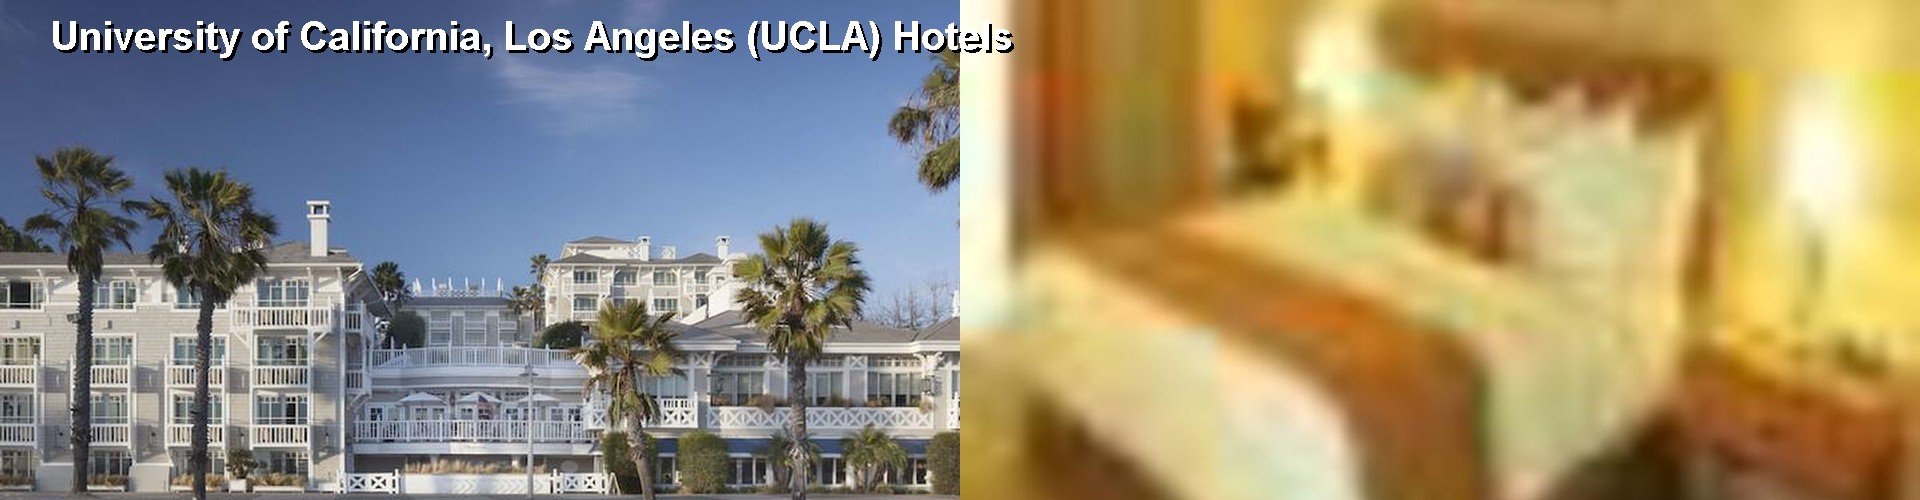 5 Best Hotels near University of California, Los Angeles (UCLA)